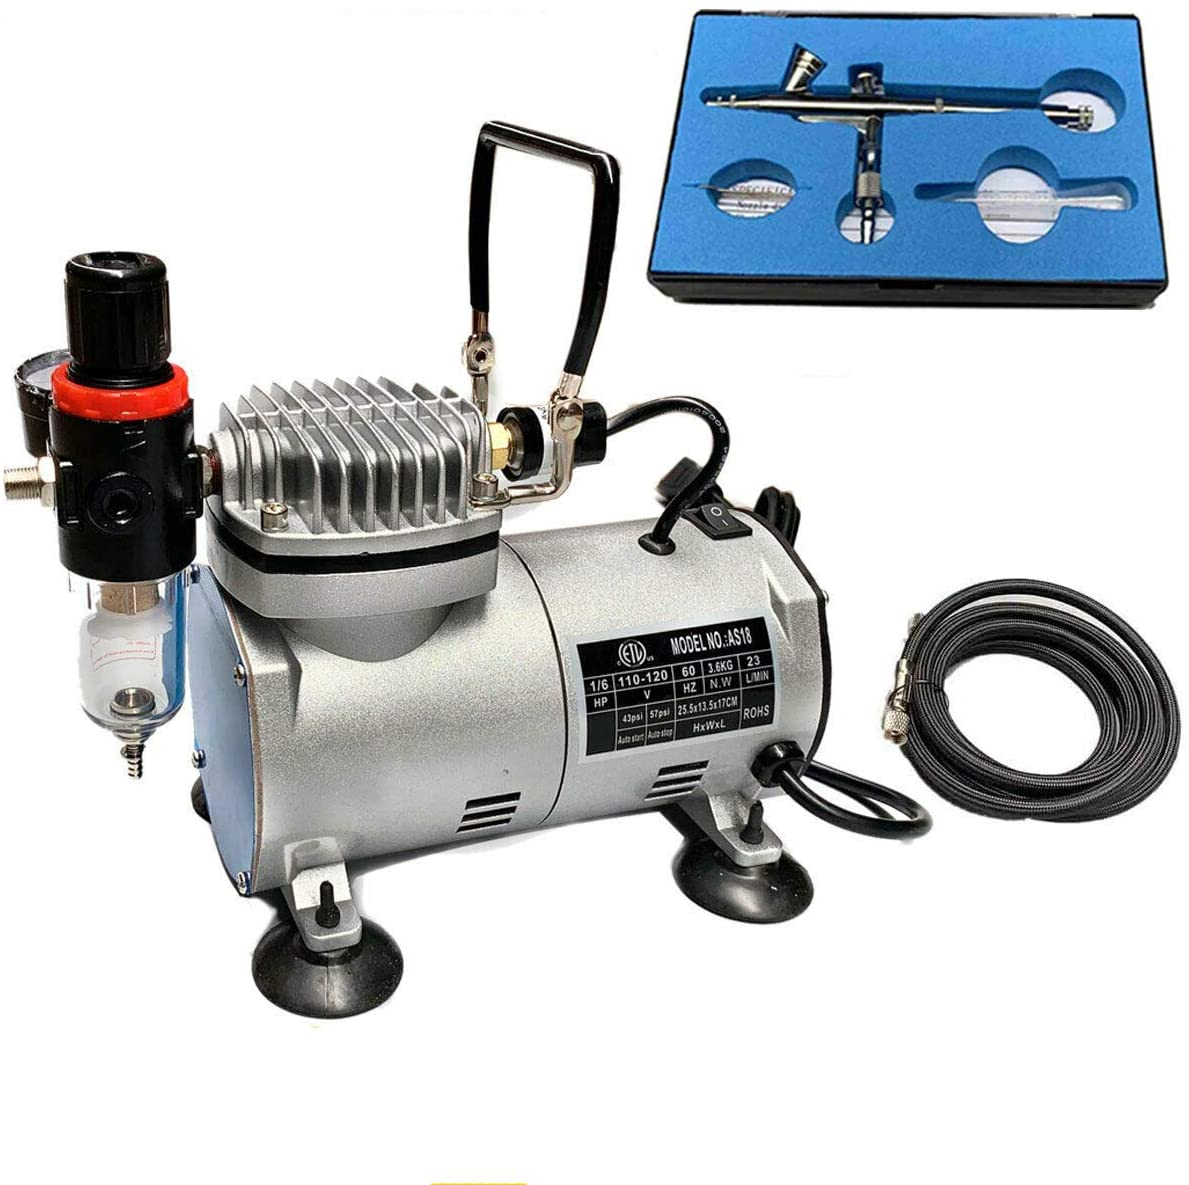 EWANYO Professional Airbrushing Paint System Gravity Feed Dual-action Airbrush Kit with 6Ft Hose and a Powerful 1/6 hp Single Piston Quiet Air Compressor 110V